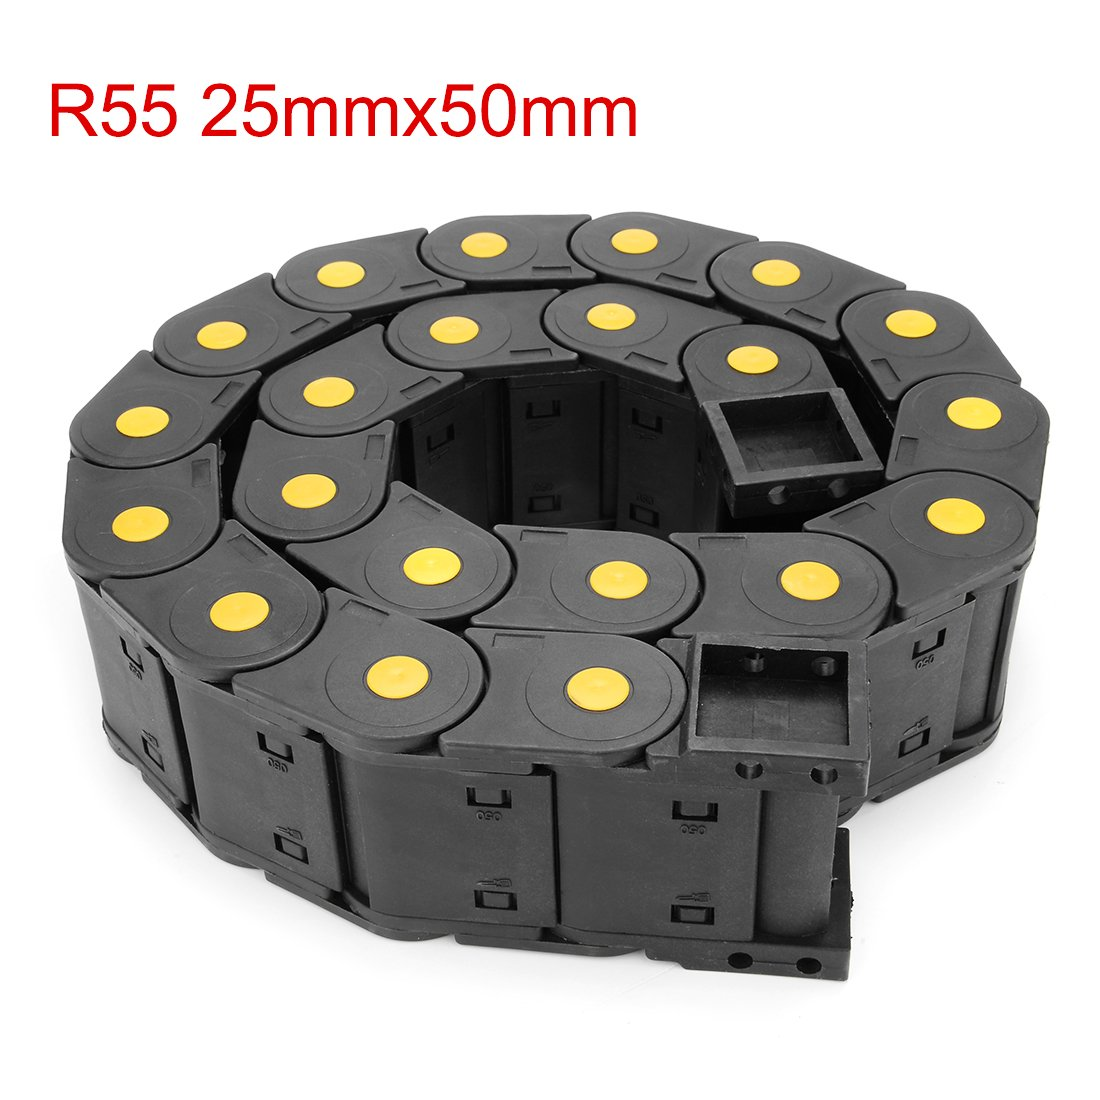 uxcell R38 18mm x 25mm Plastic Semi Closed Cable Wire Carrier Drag Chain 1M Length Black